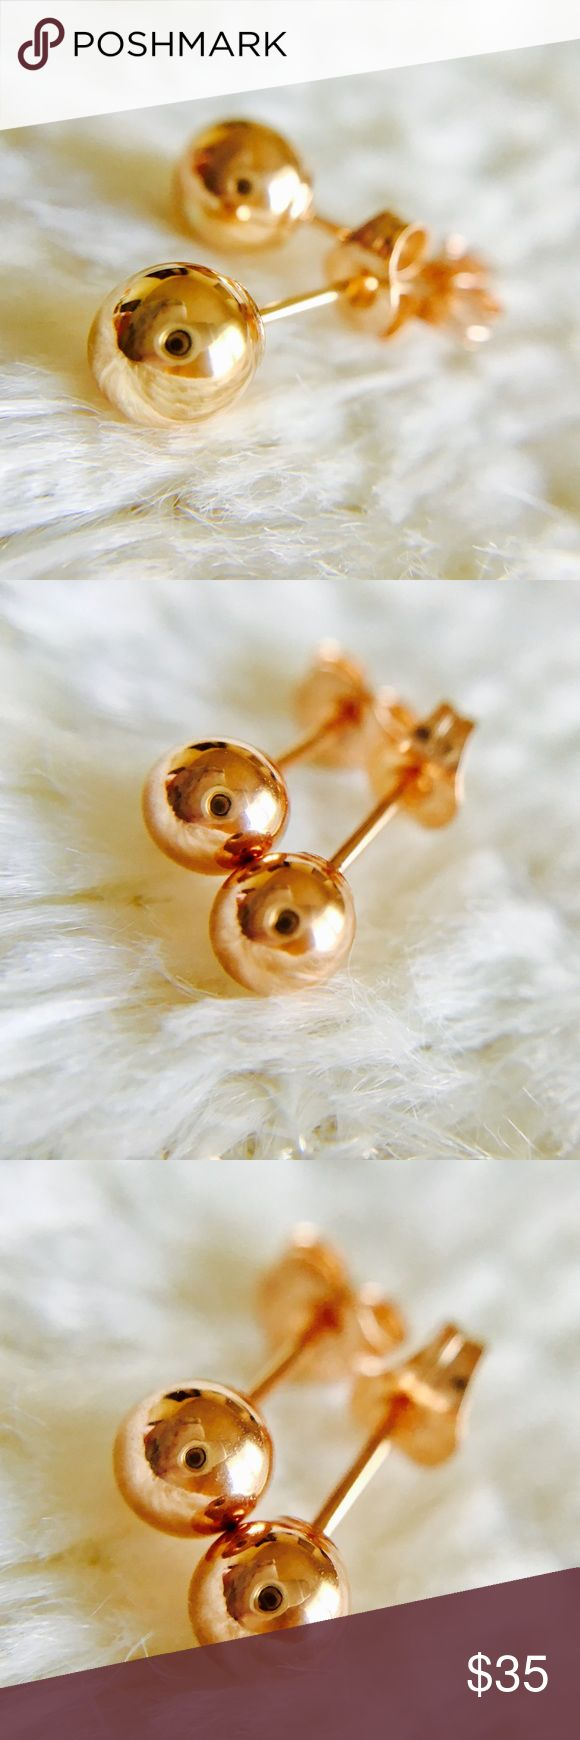 NEW🎉 14K Rose Gold 5mm Studs NEW Real solid 14K ROSE GOLD ball 5mm stud earrings! Comes in gift box, butterfly push backs. Stamped. Priced to sell, bundle and save! Jewelry Earrings